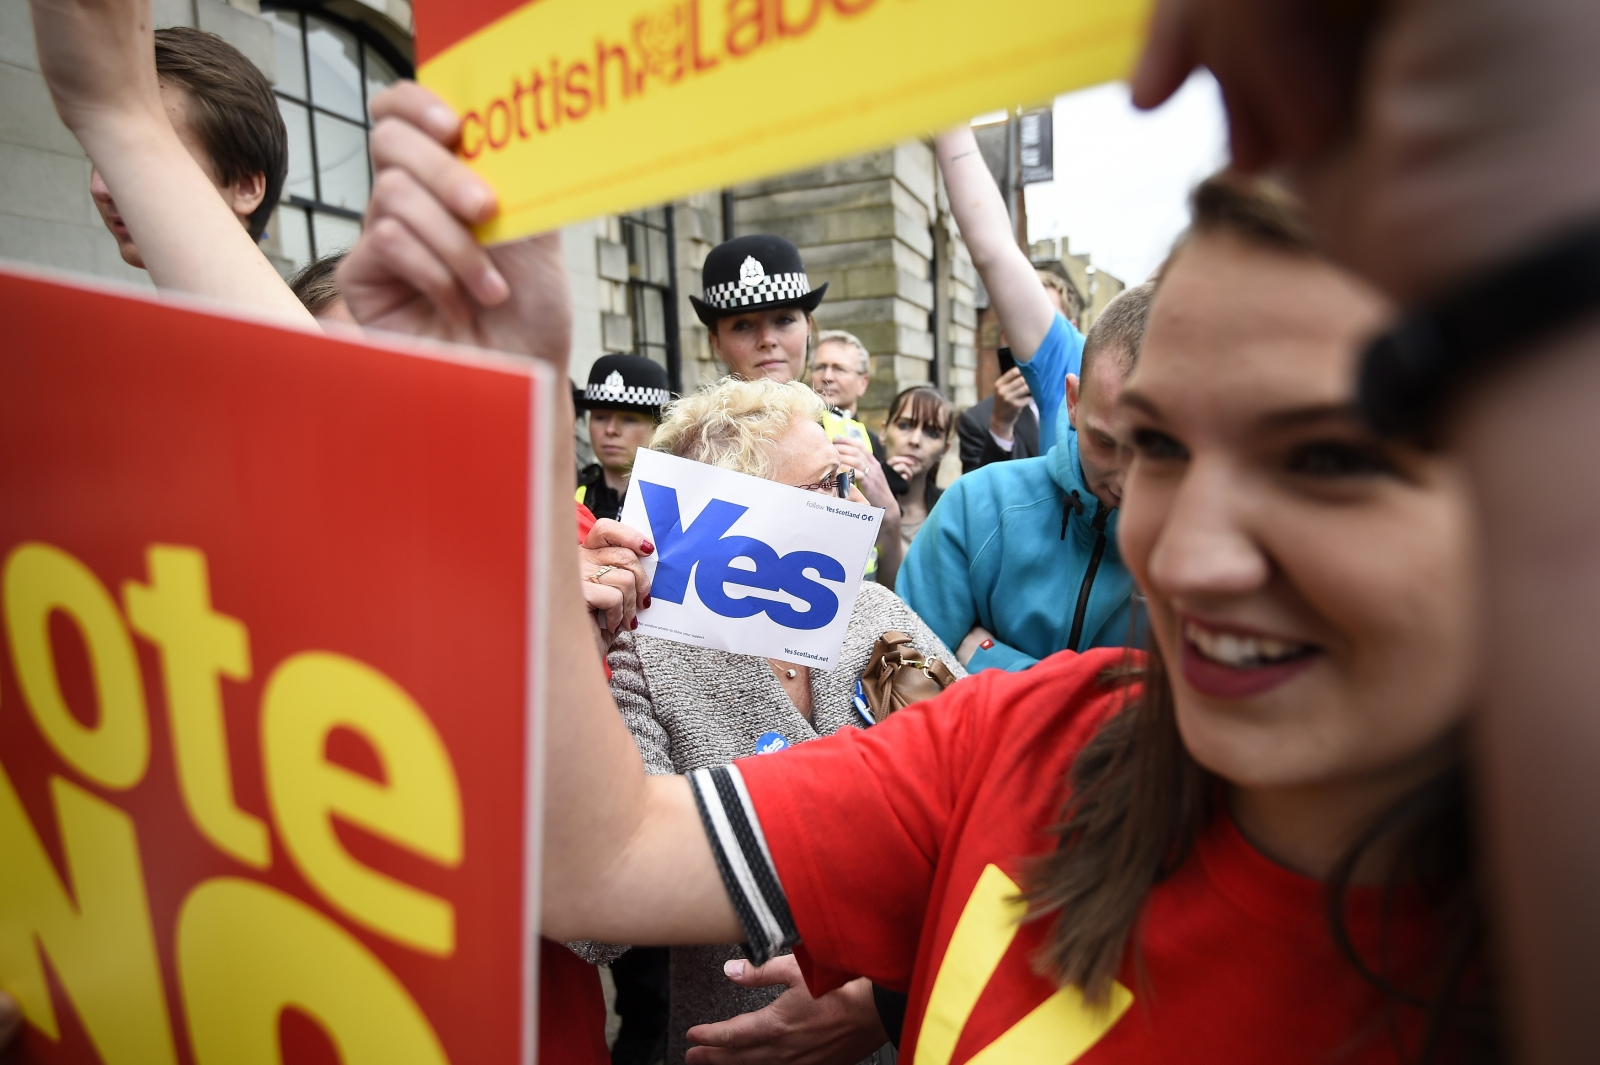 Scotland yes and no to independence campaigners